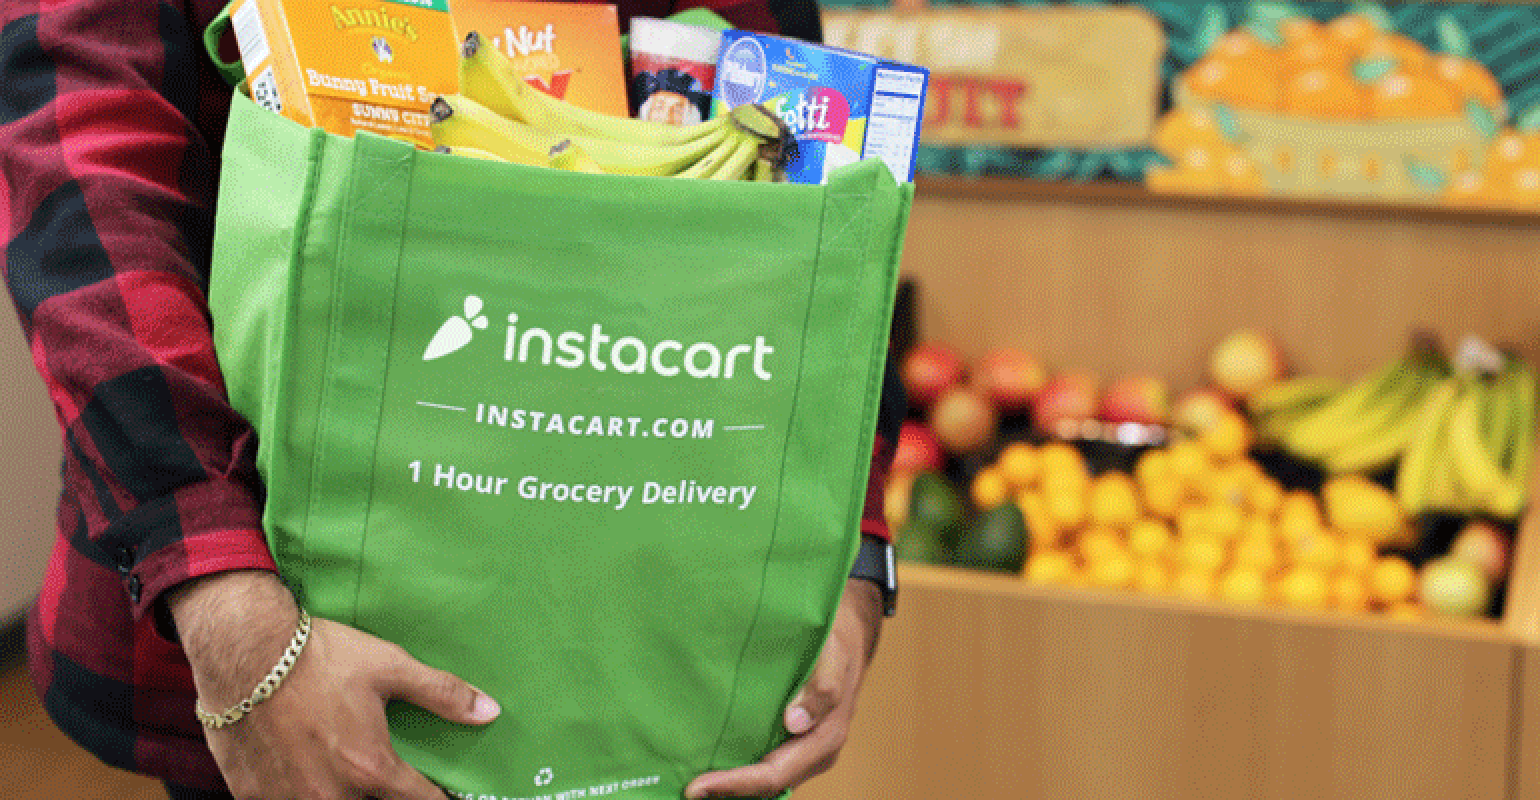 Instacart plans massive hiring spree, looking for 300K shoppers